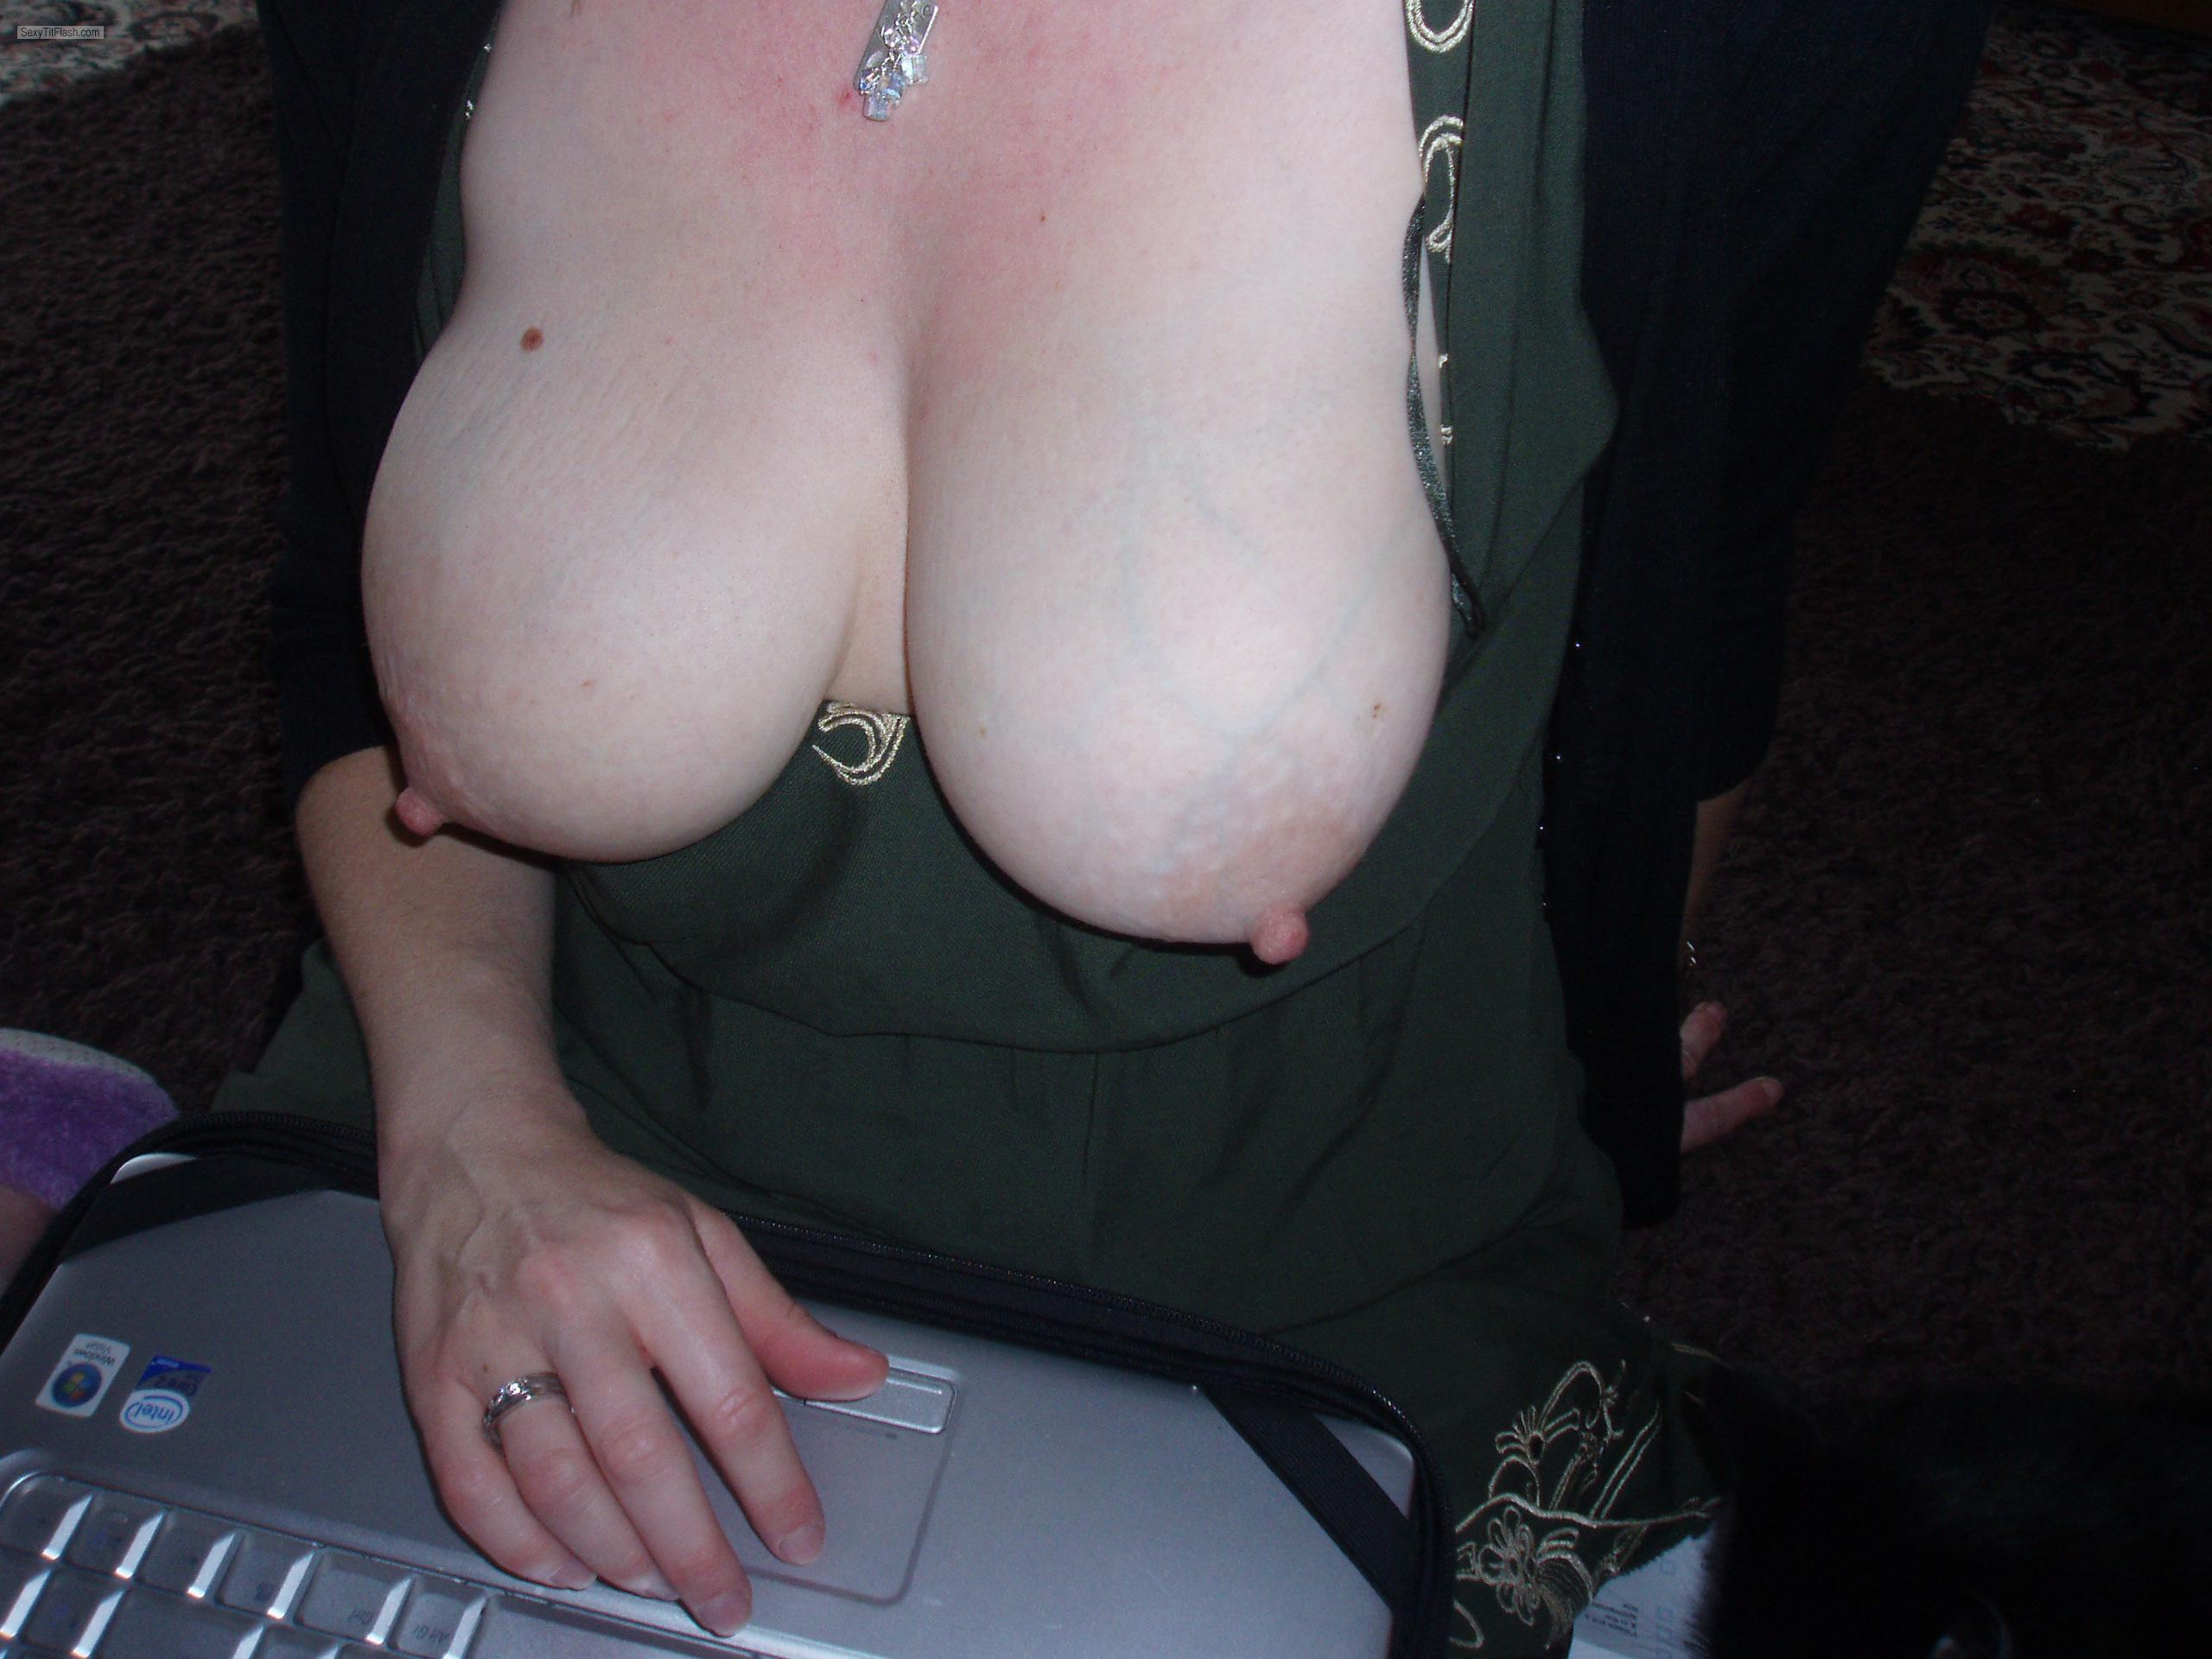 Tit Flash: My Big Tits - Katie from United States